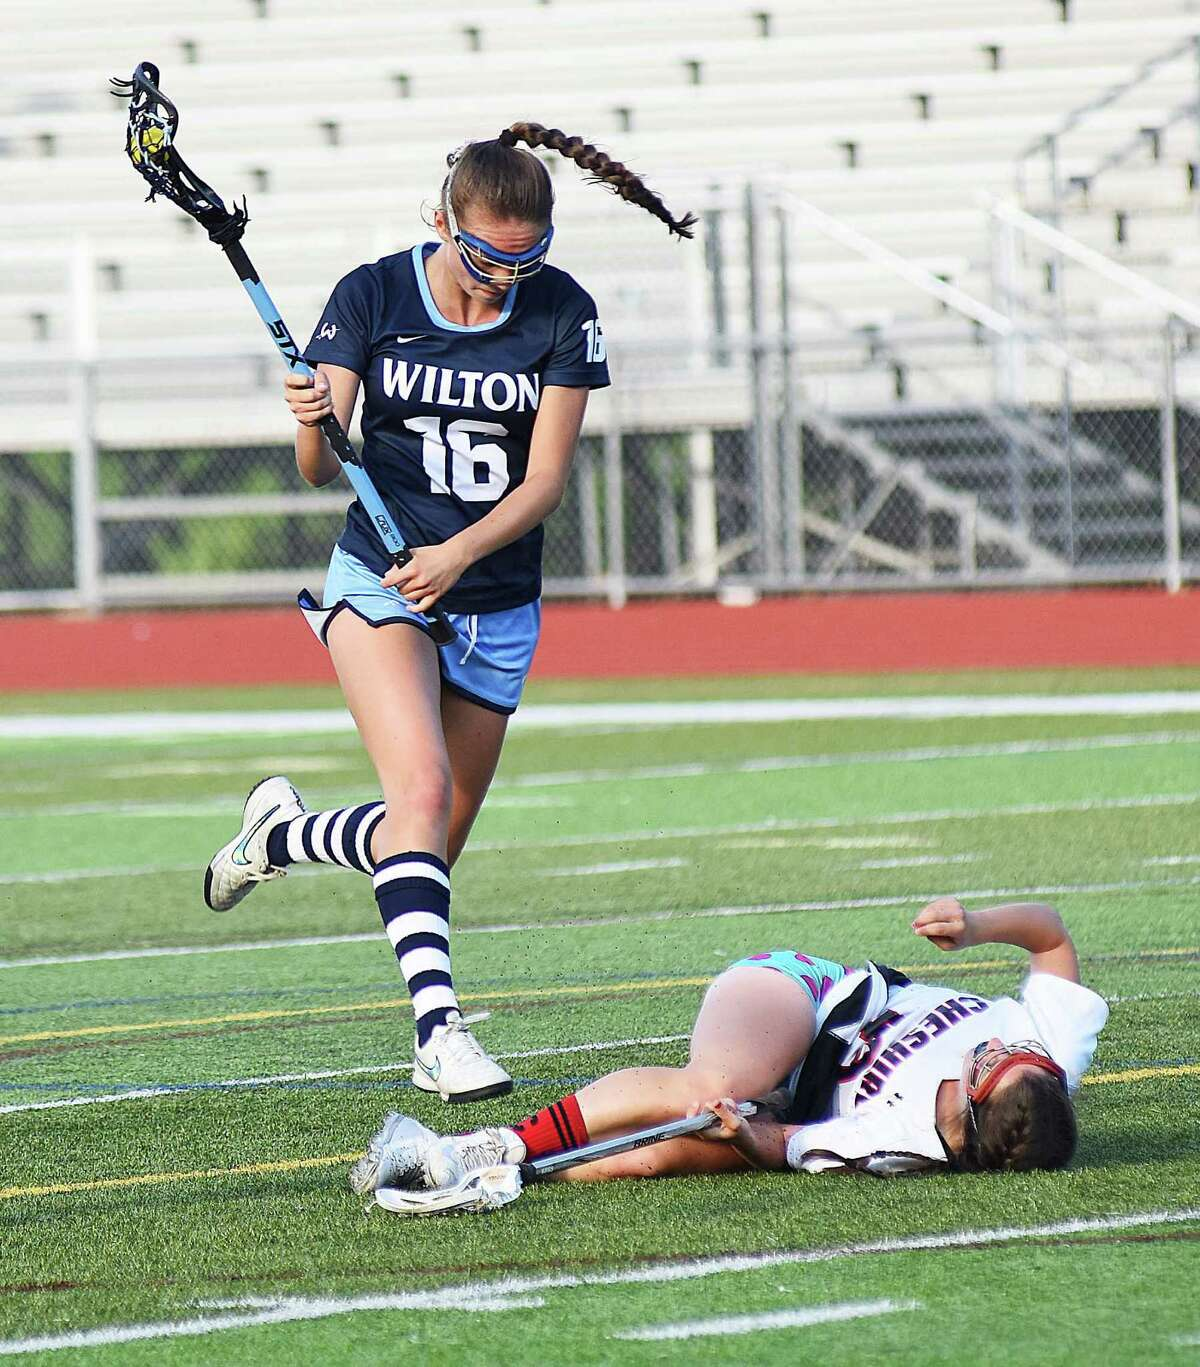 Wilton's Sydney Brandt, left, leaps over a fallen Emily Peck of Cheshire during the second half of Thursday's CIAC Class L girls lacrosse quarterfinal at Alumni Field in Cheshire.